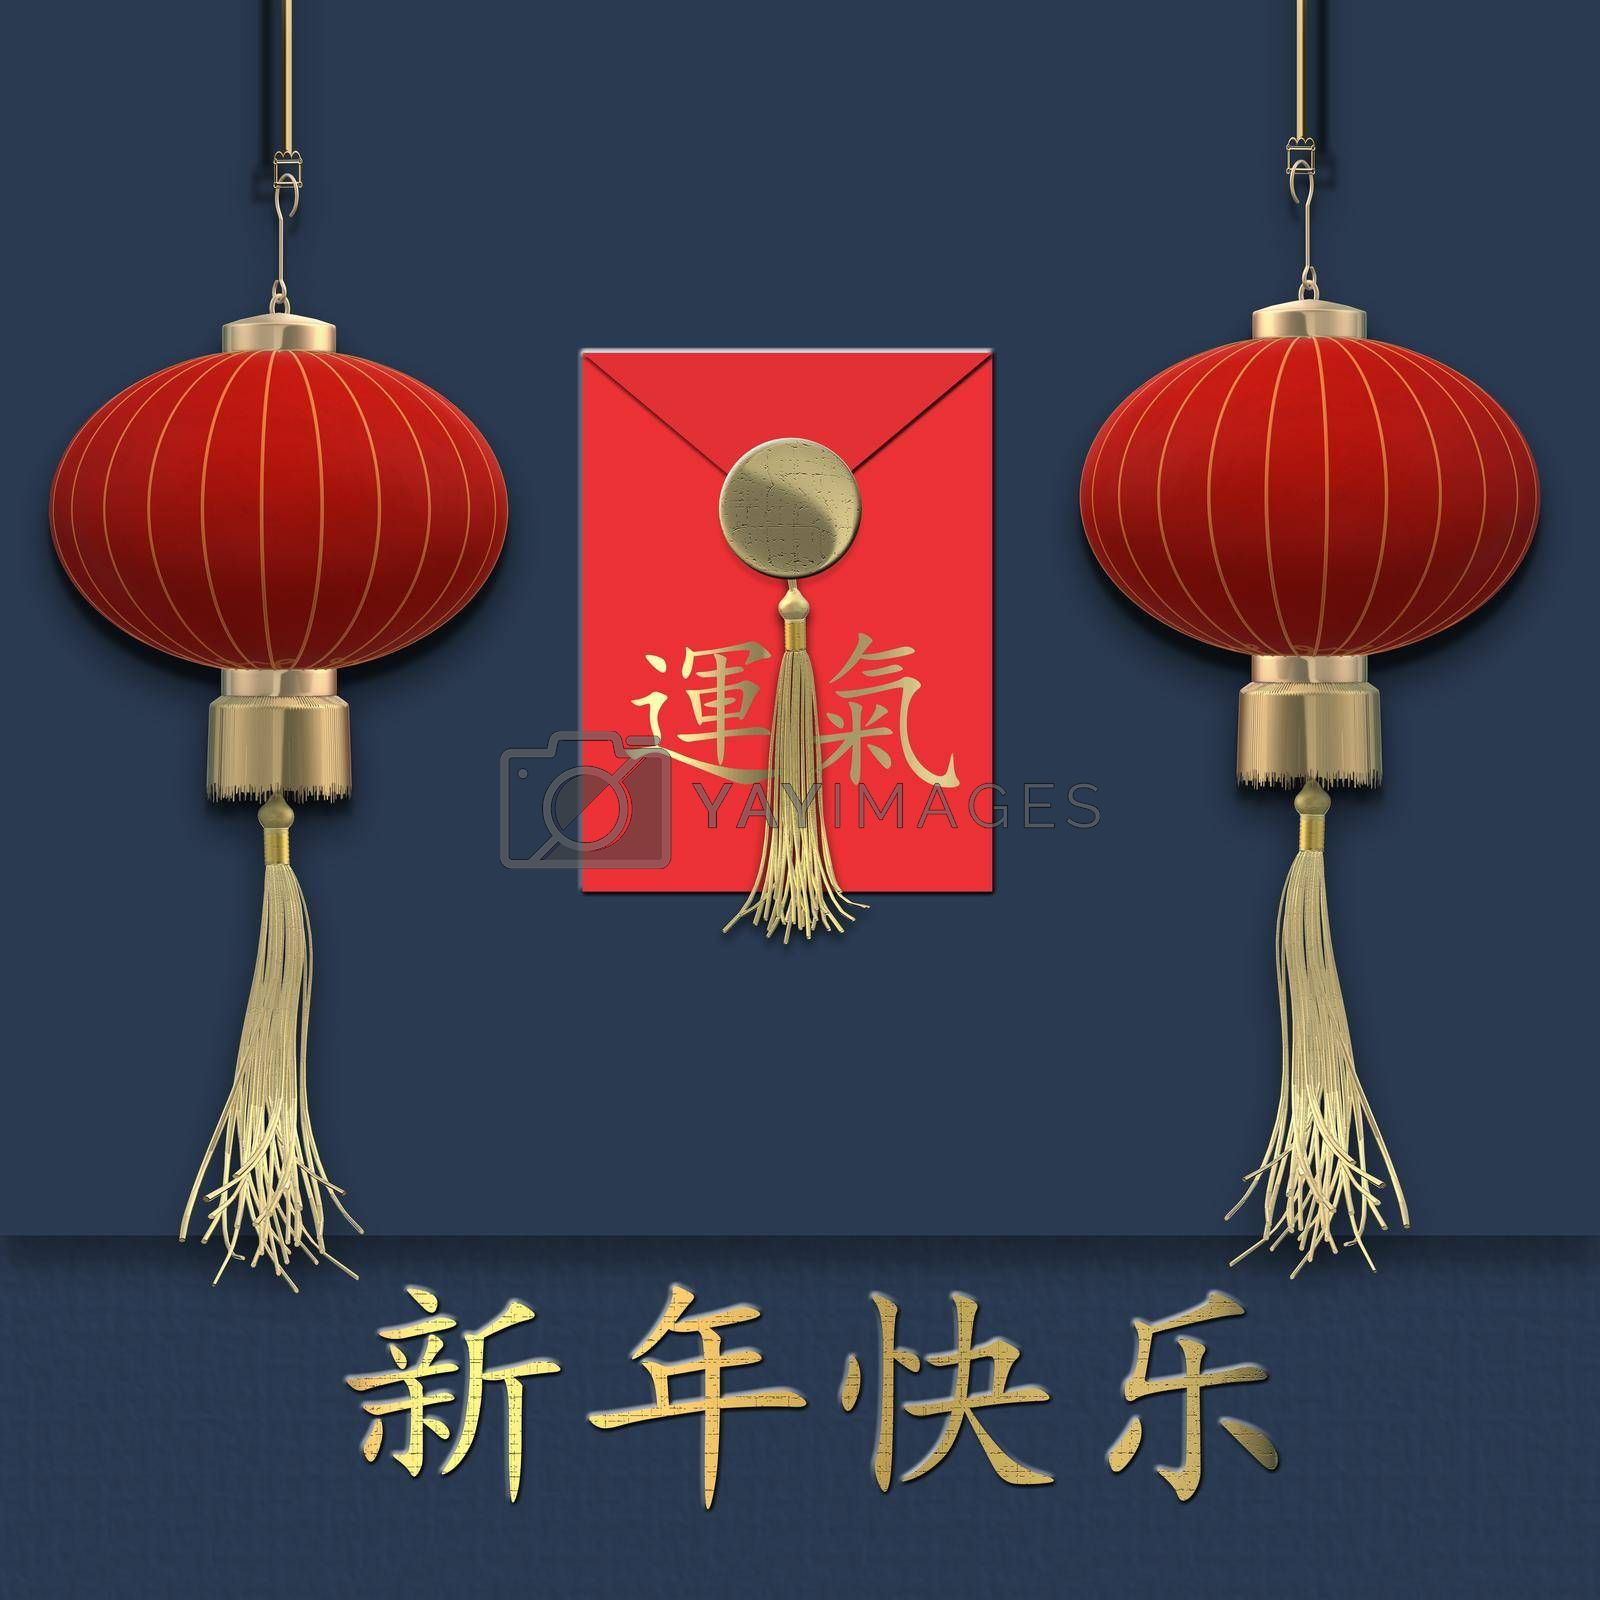 Chinese 2021 New Year over blue. Red realistic lanterns. Red Chinese lucky envelope with text Chinese translation Luck. Text Chinese translation Happy New Year. 3D rendering